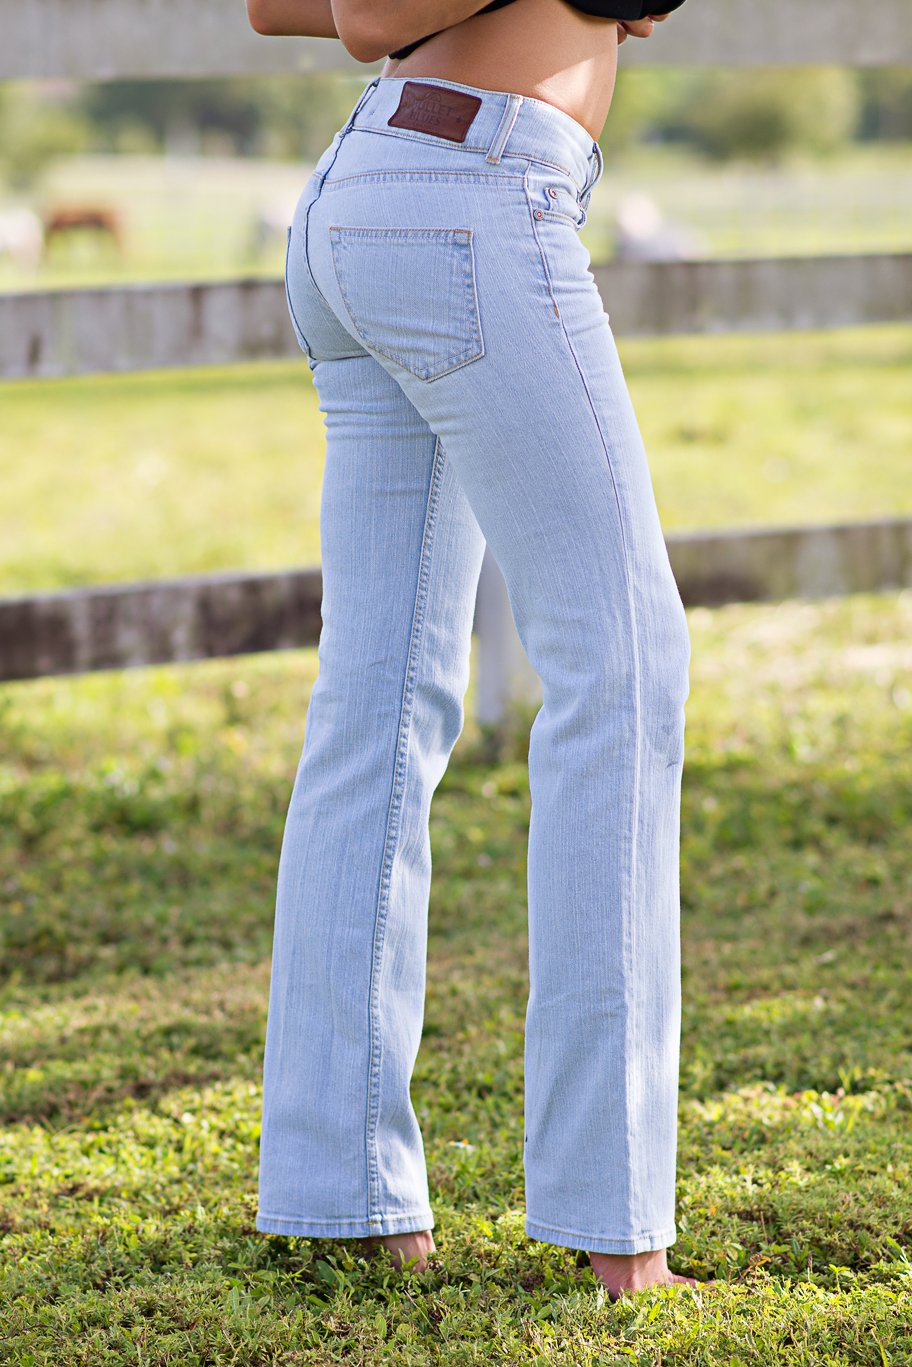 Bullet Blues Sunday Ciel Euro Size 30 US Size 10 - 12 Women's Flare Jeans Made in the USA